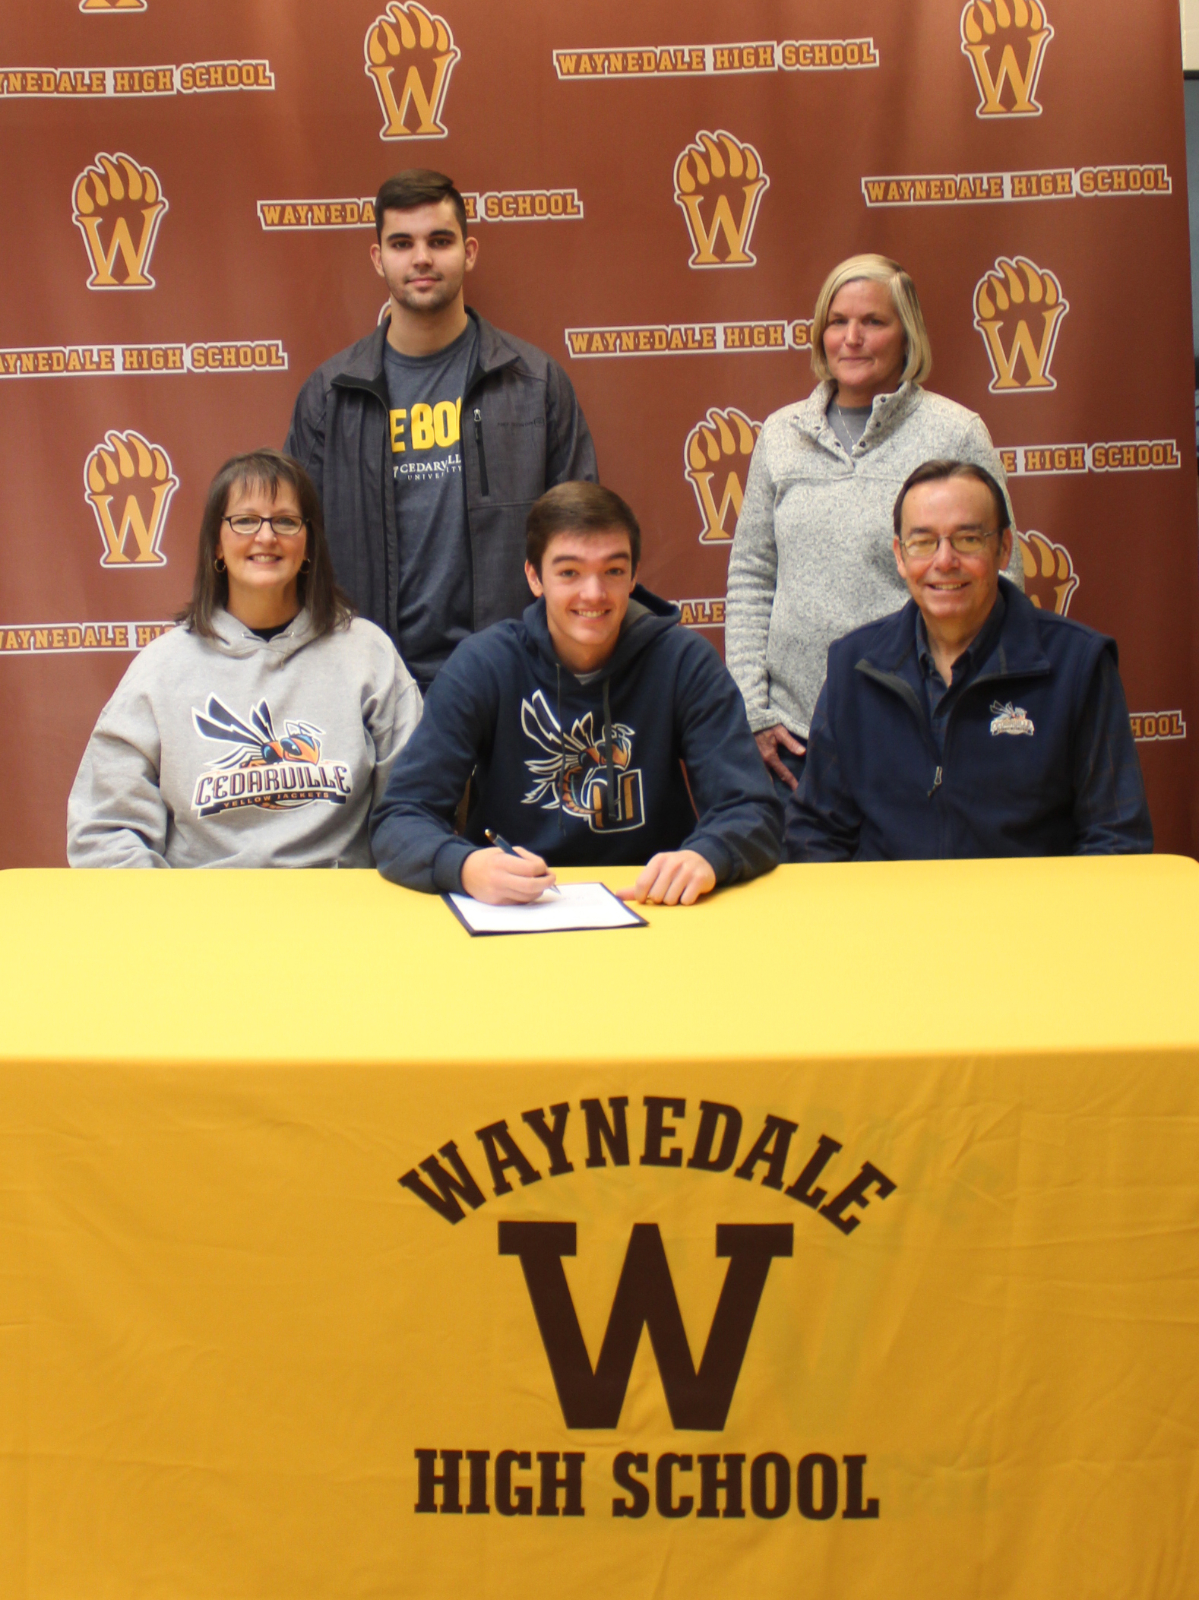 Dylan Ledford Will Be Attending Cedarville University for Golf